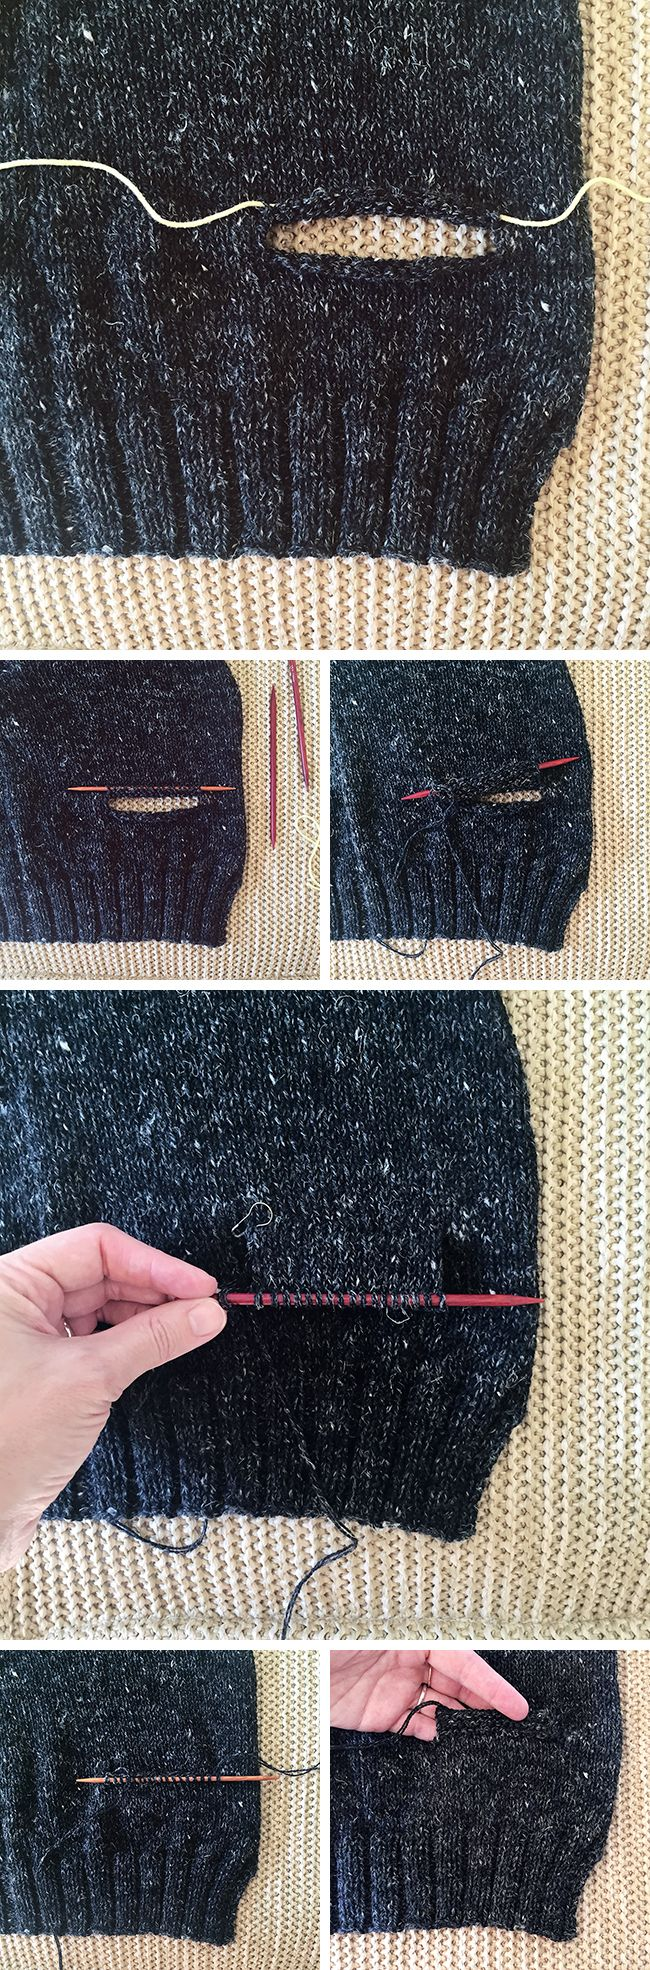 How to knit inset pockets (top-down)